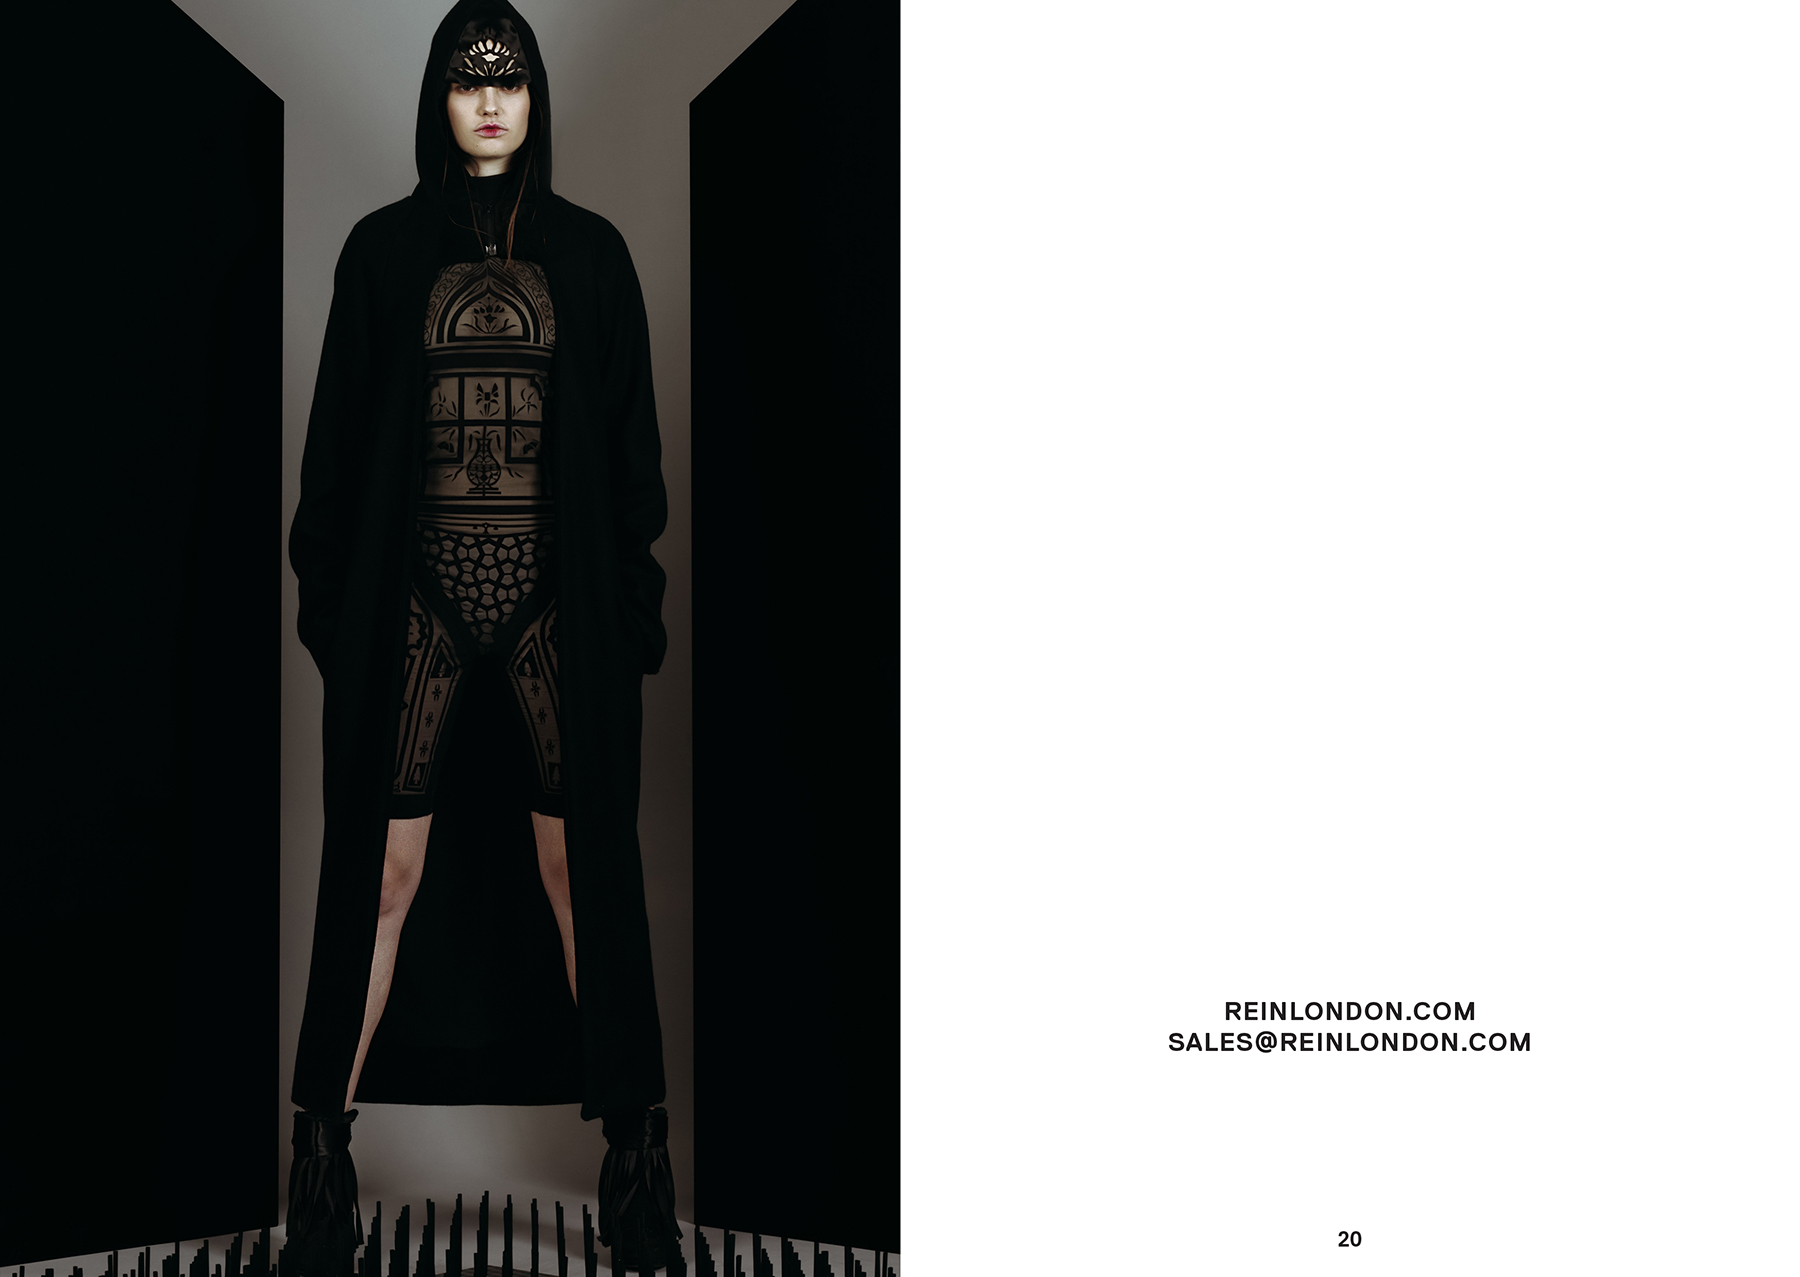 aw15_lookbook_digital_HIRES-11